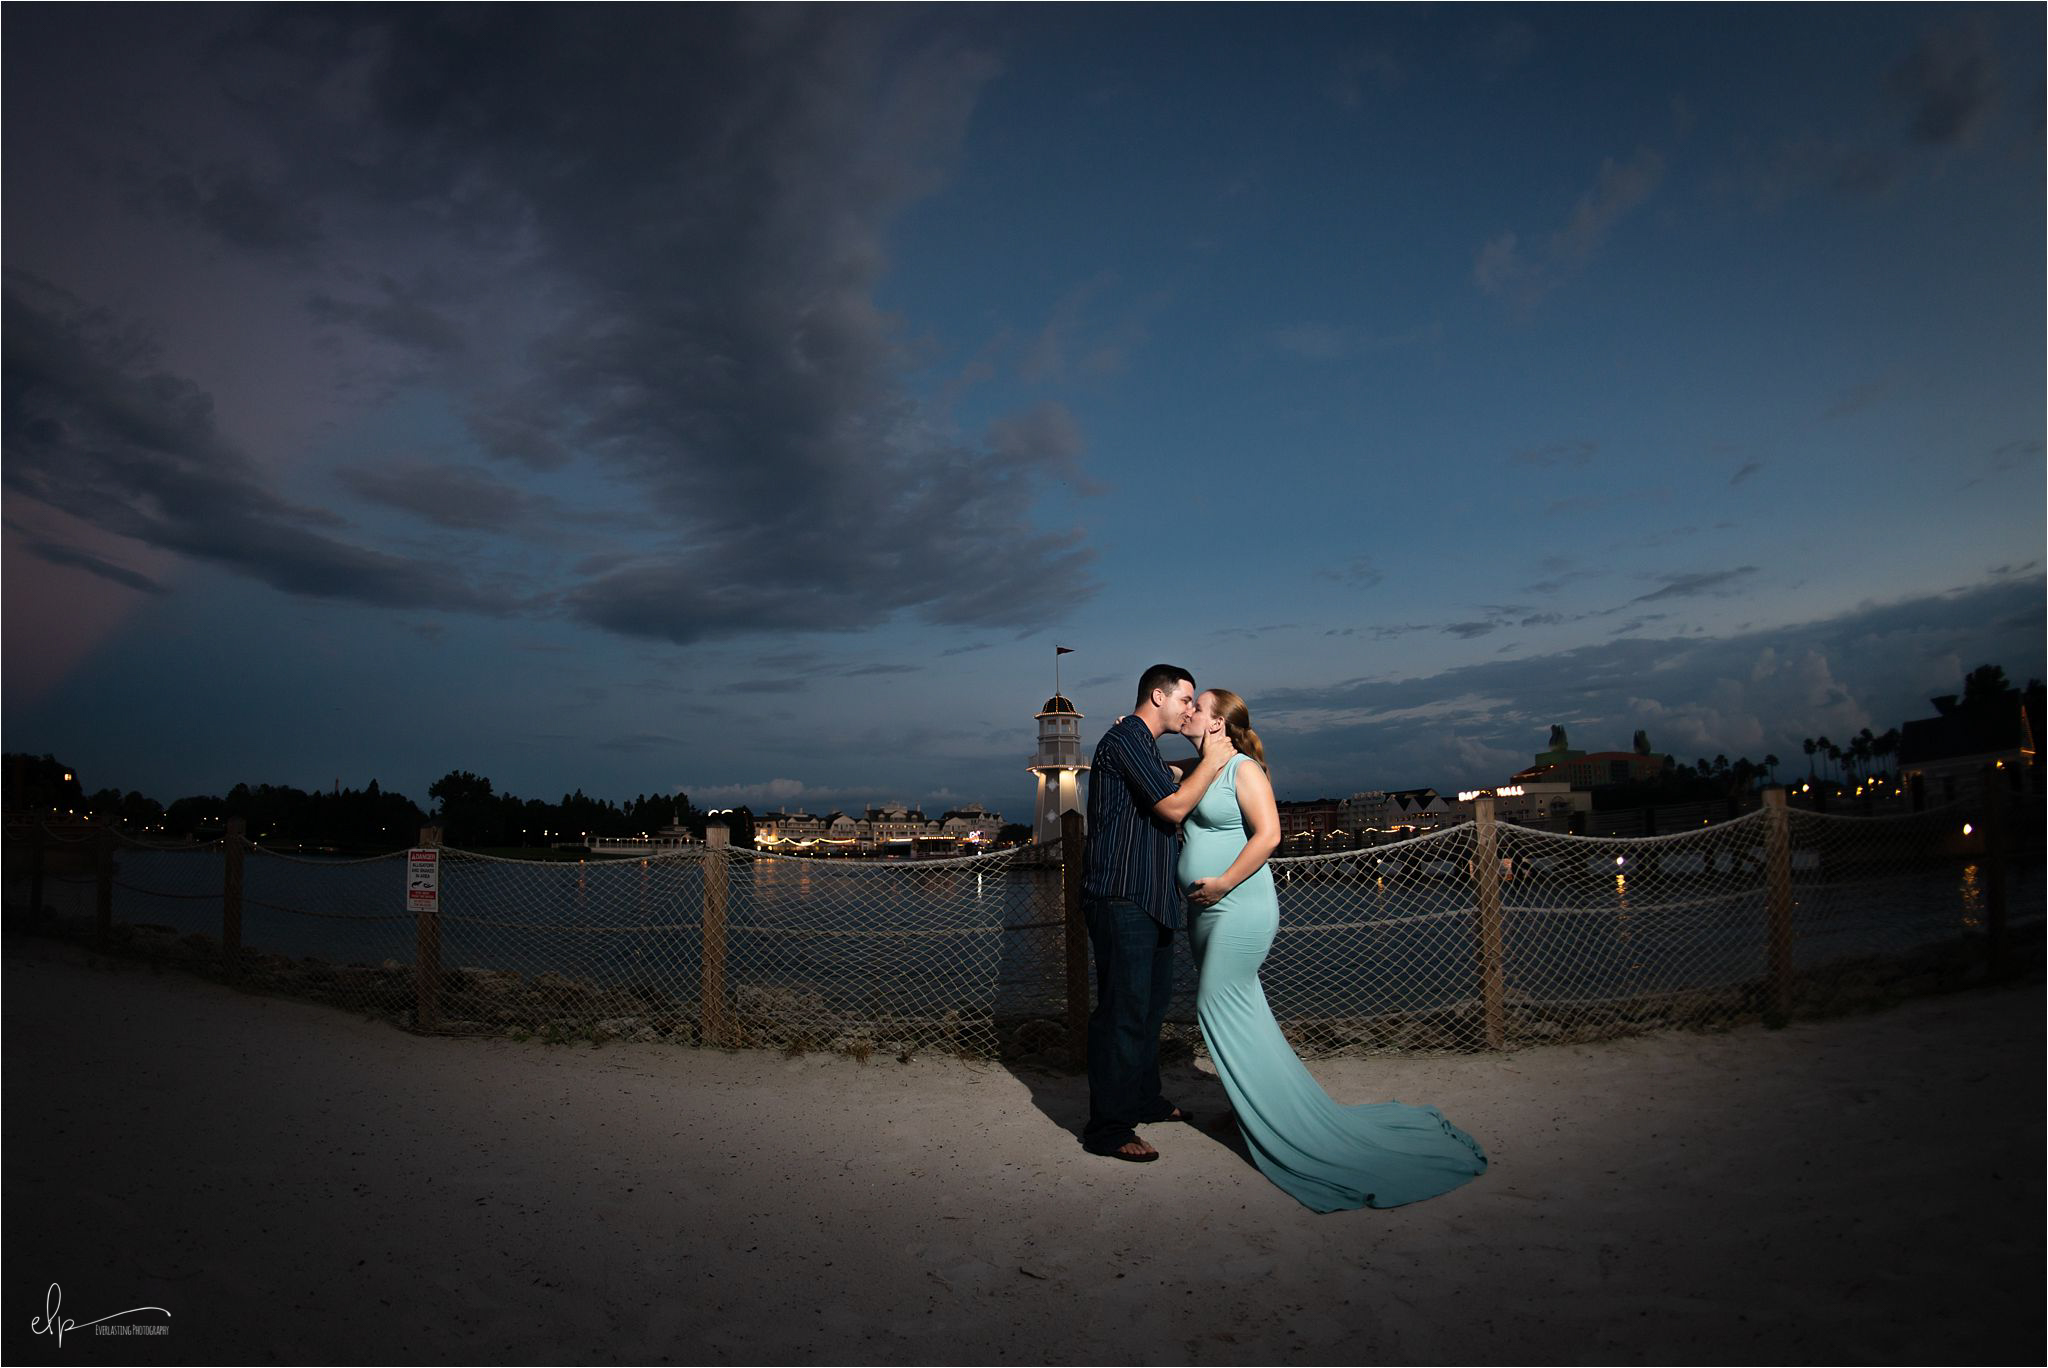 Maternity session during sunset at Disney's Beach Club Resort.